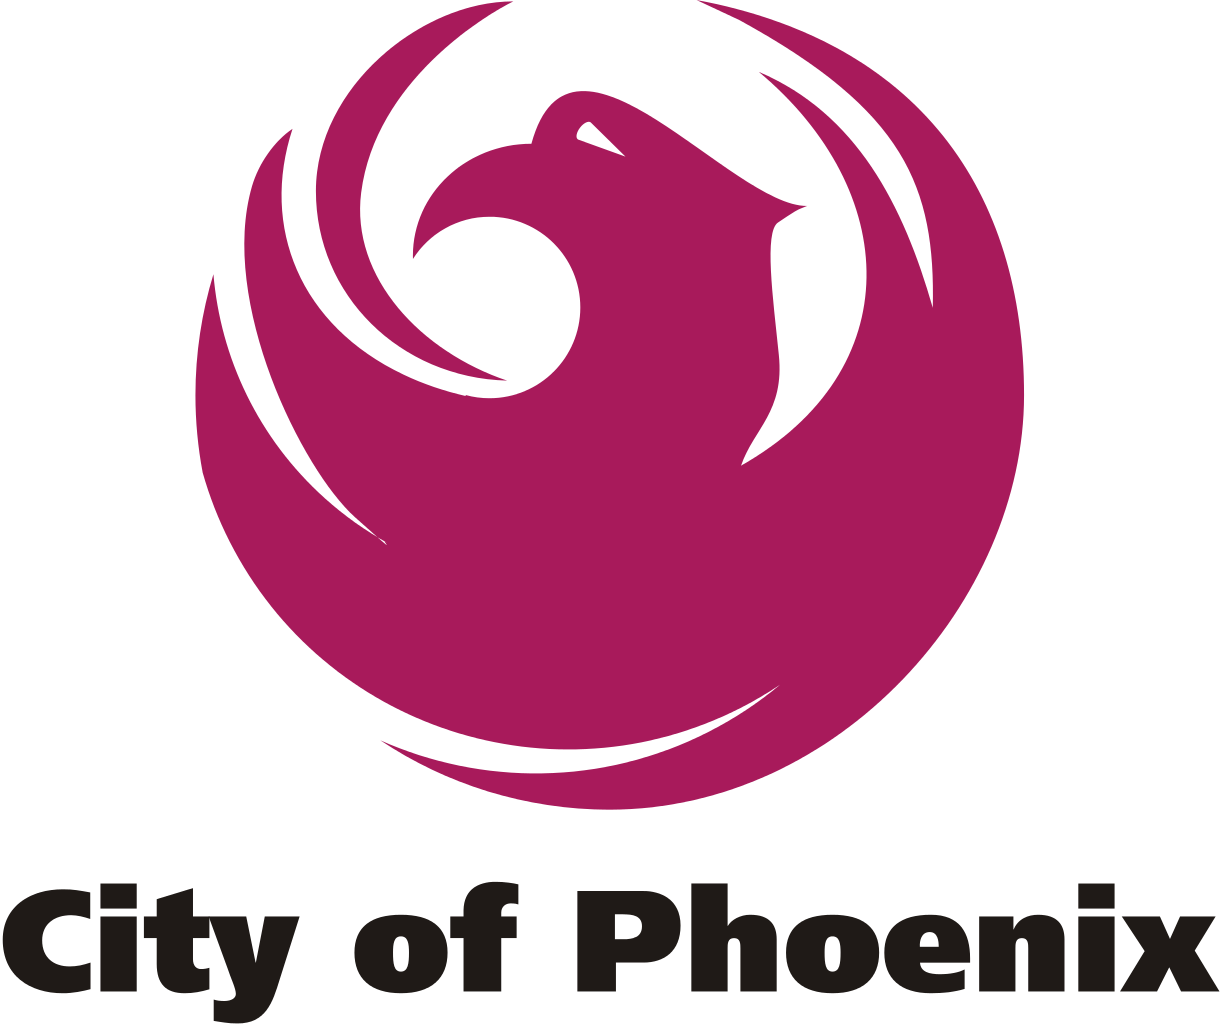 Phoenix svg #3, Download drawings